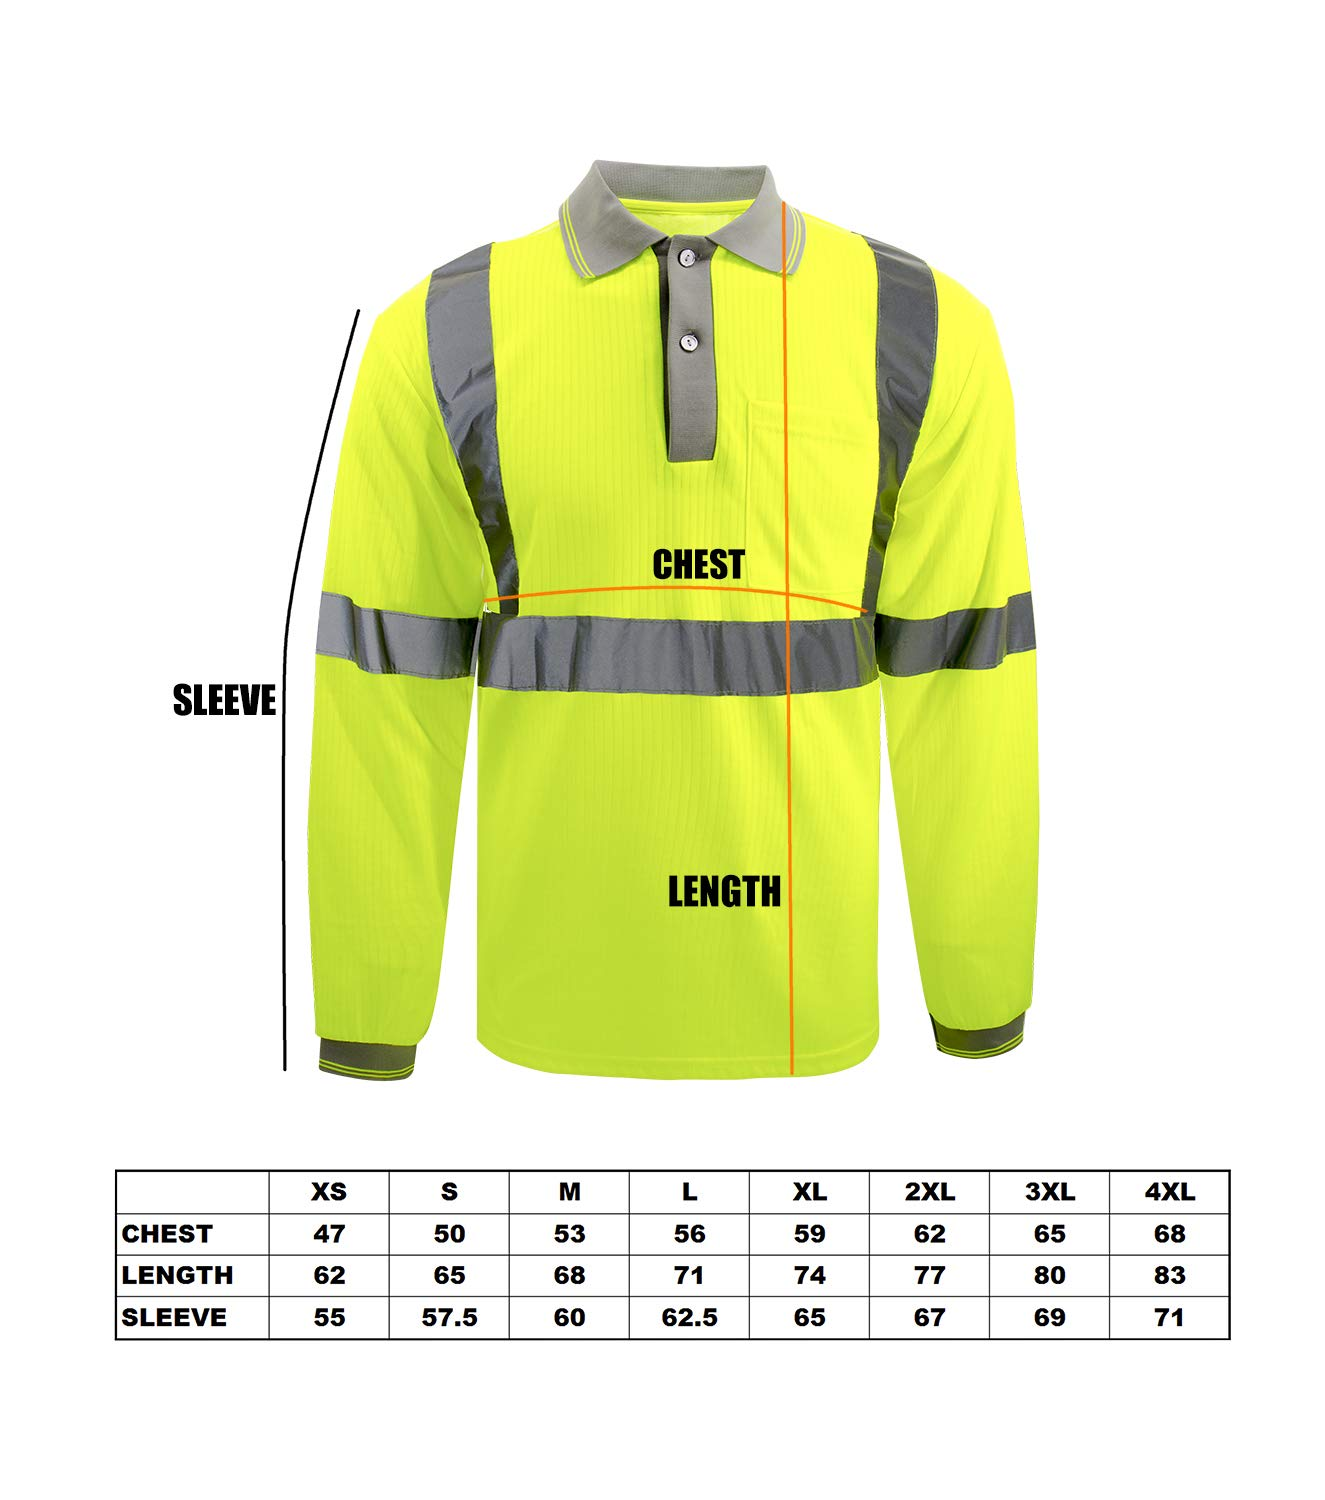 Safety short sleeve T-shirt Reflective stripes Safety Hi-vis Yellow knitted breathable shirt Bright Construction Workwear for men.Yellow Meets ANSI//ISEA Standards. Extra Large